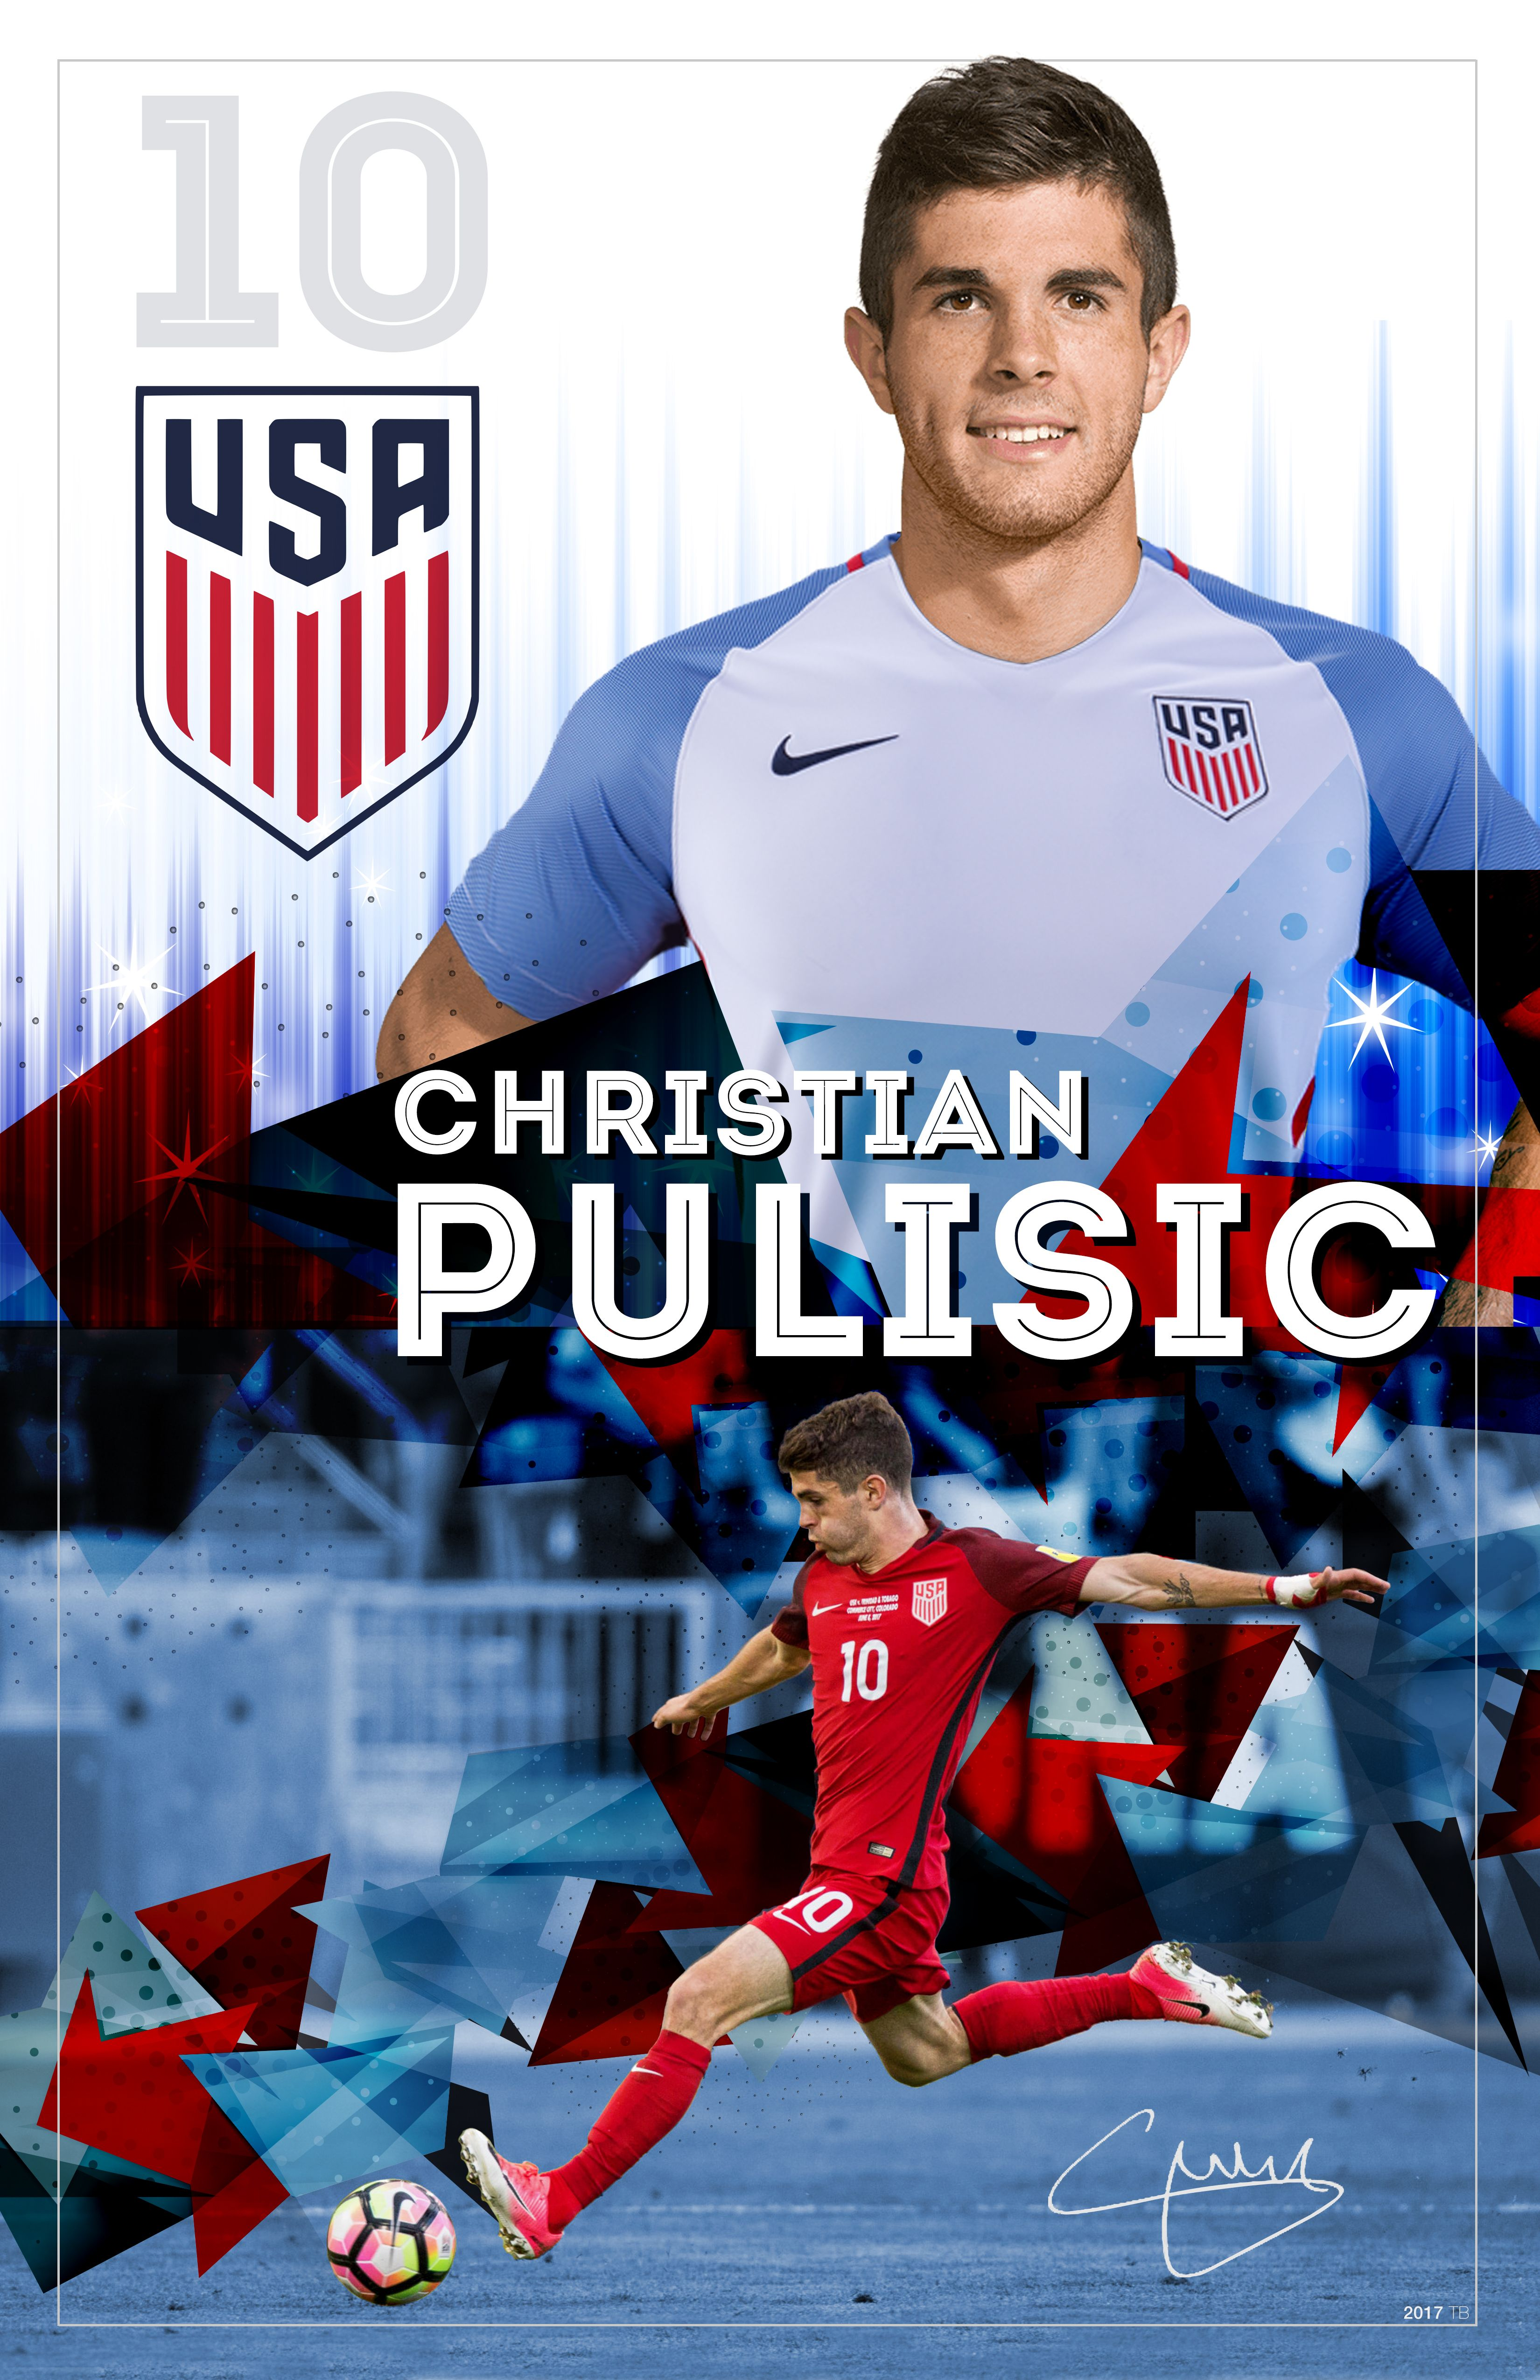 Christian Pulisic Soccer Poster by TAYLOR BUCK CREATIVE 3300x5100